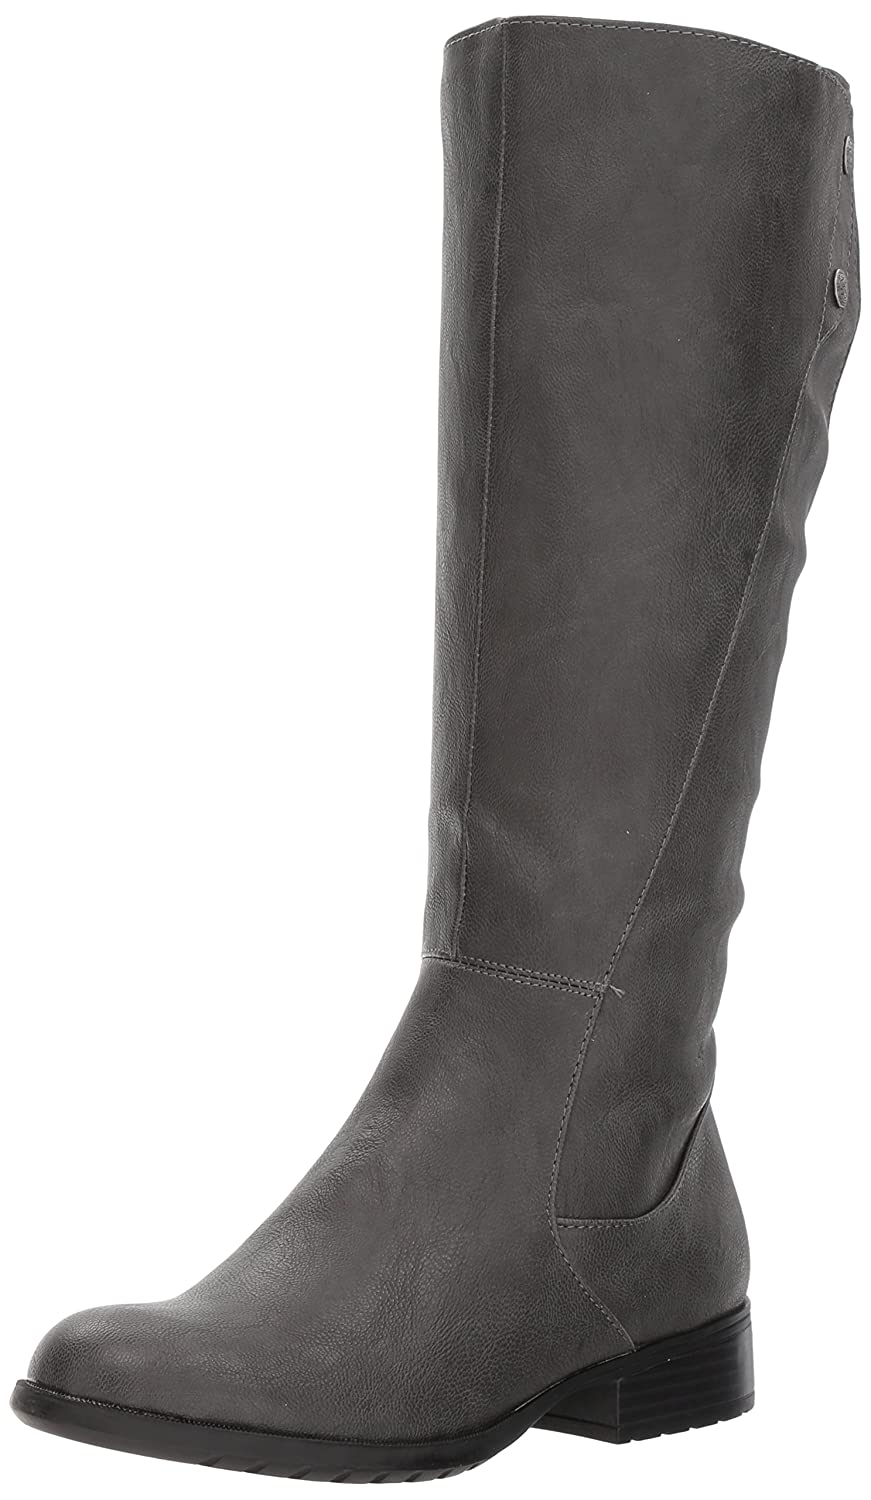 LifeStride Women's Xripley Riding Boot B072K4CVSC 11 B(M) US|Dark Grey